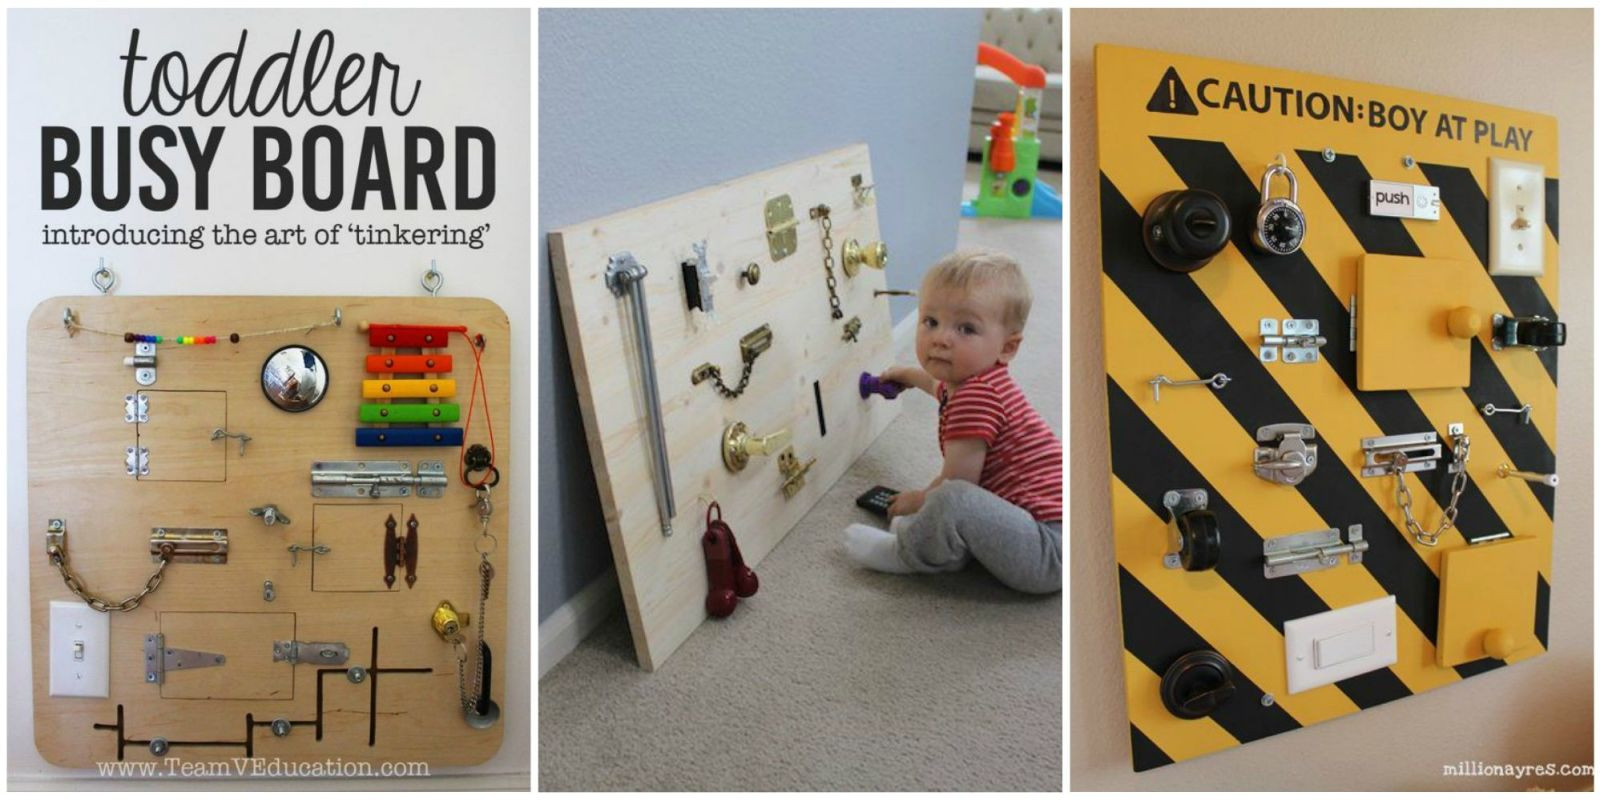 Toddler Busy Board DIY  This DIY Toddler Busy Board Will Keep Little es Busy for